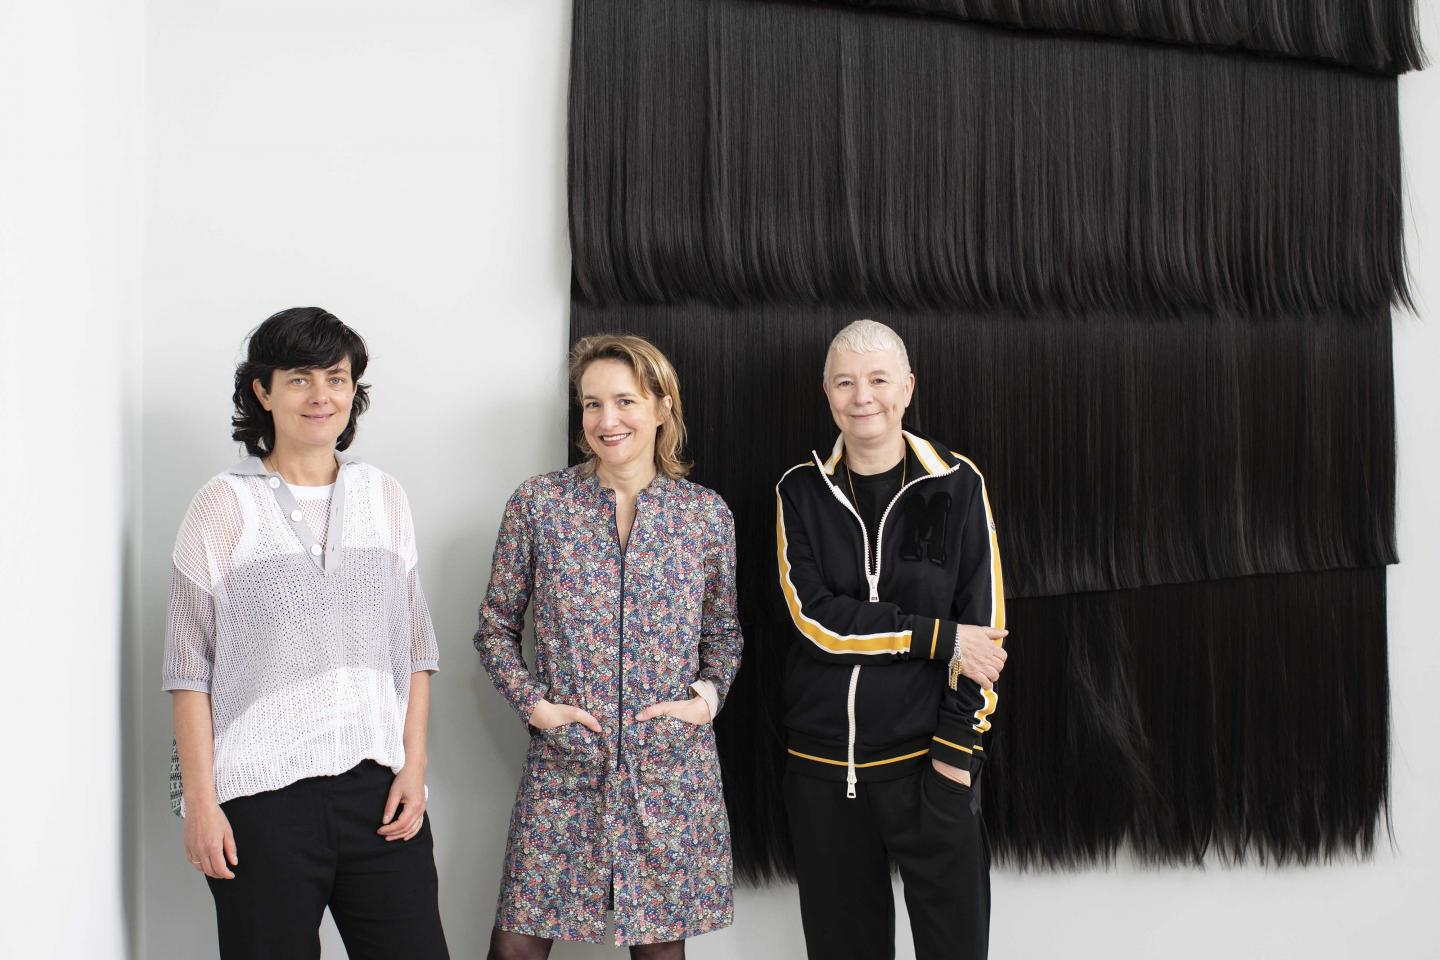 Pauline Boudry, Charlotte Laubard, Renate Lorenz (left to right) at the Swiss Pavilion 2019. ©KEYSTONE / Gaëtan Bally